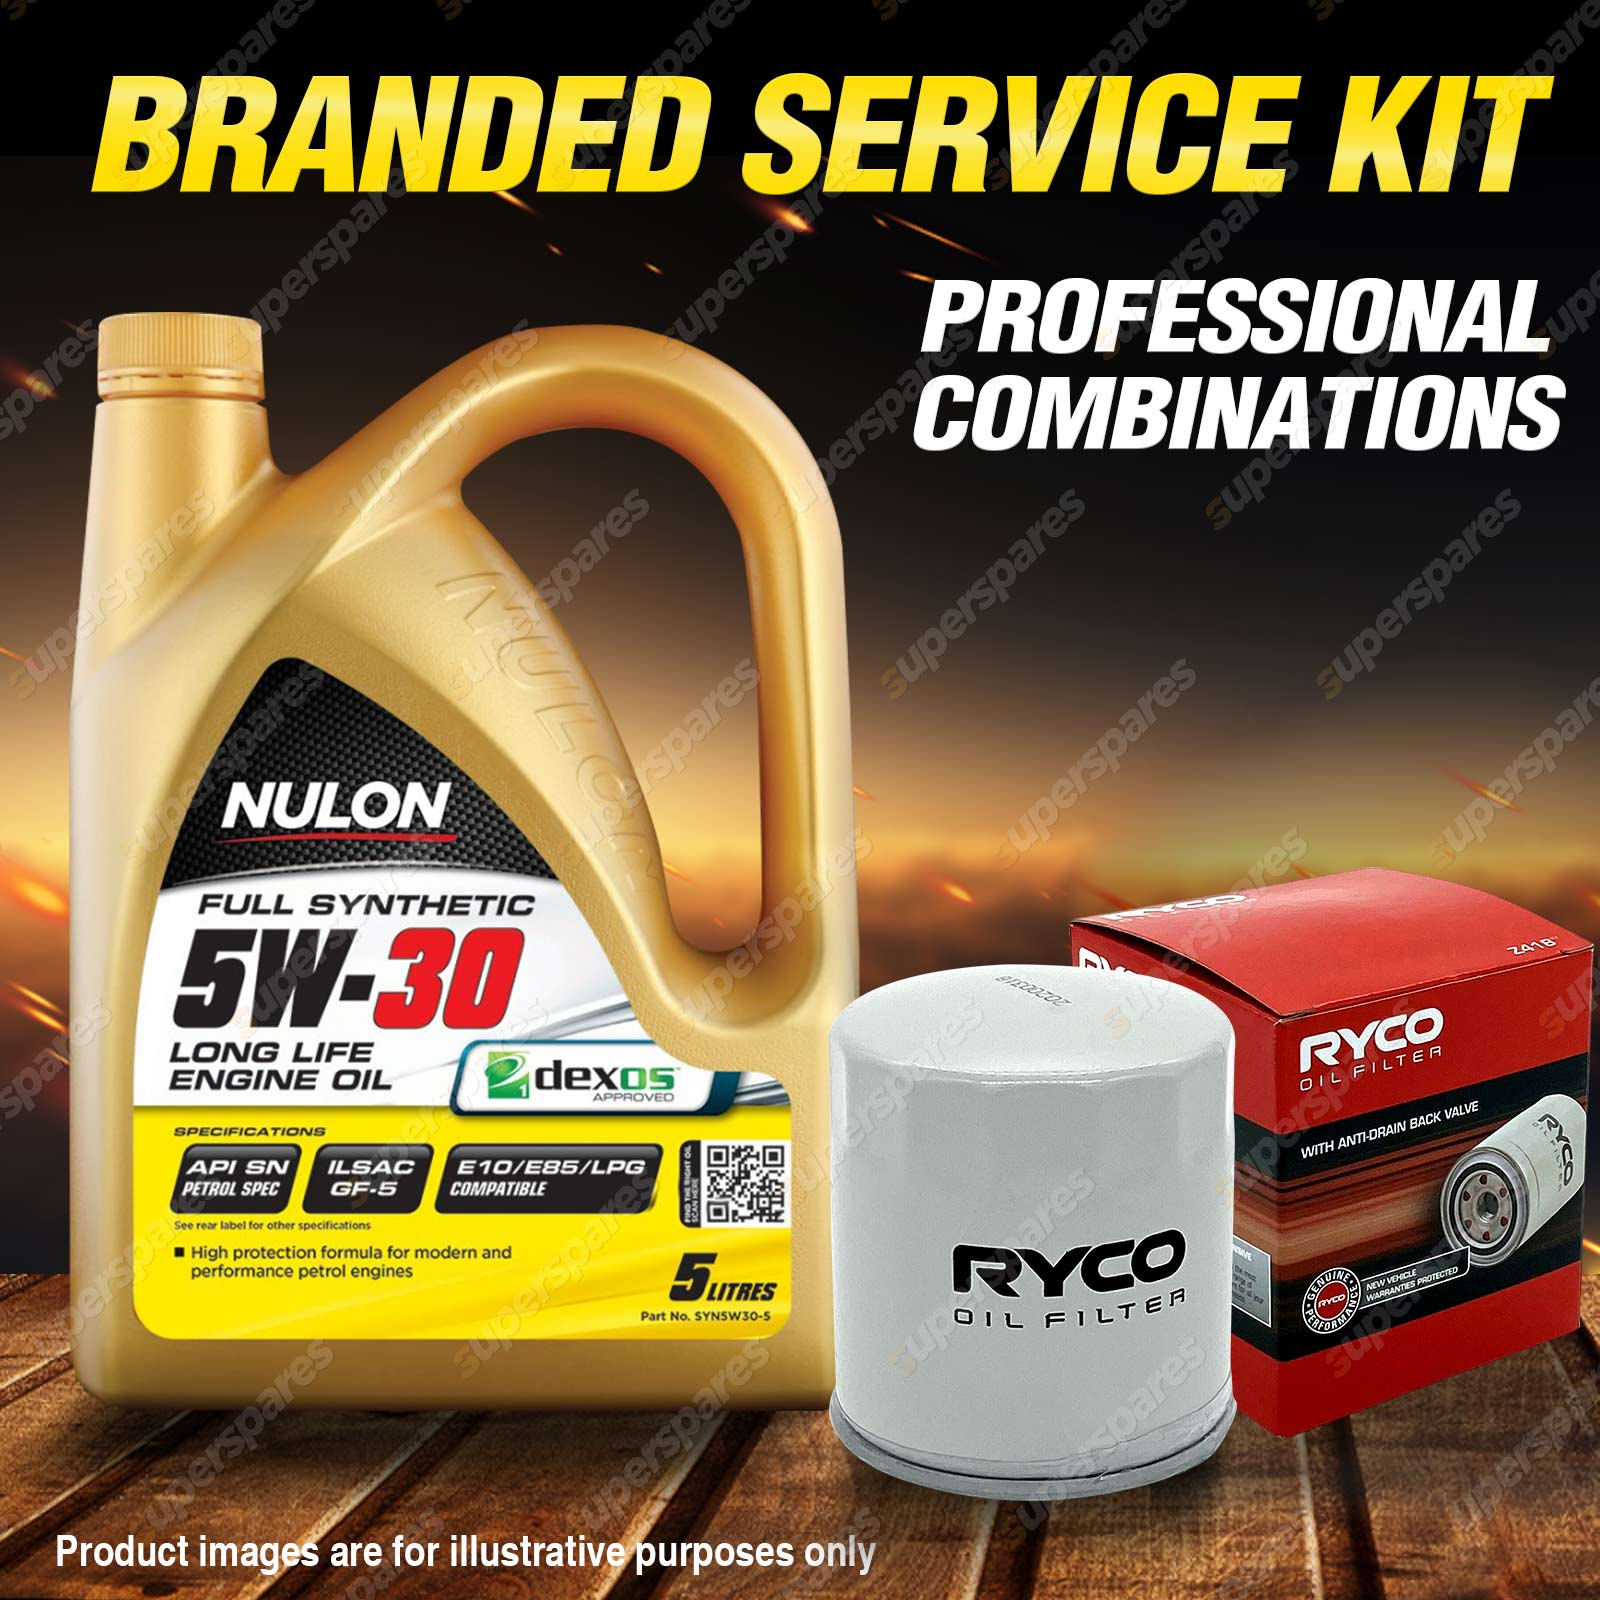 hight resolution of ryco oil filter 5l syn5w30 engine oil service for subaru impreza wrx liberty wrx